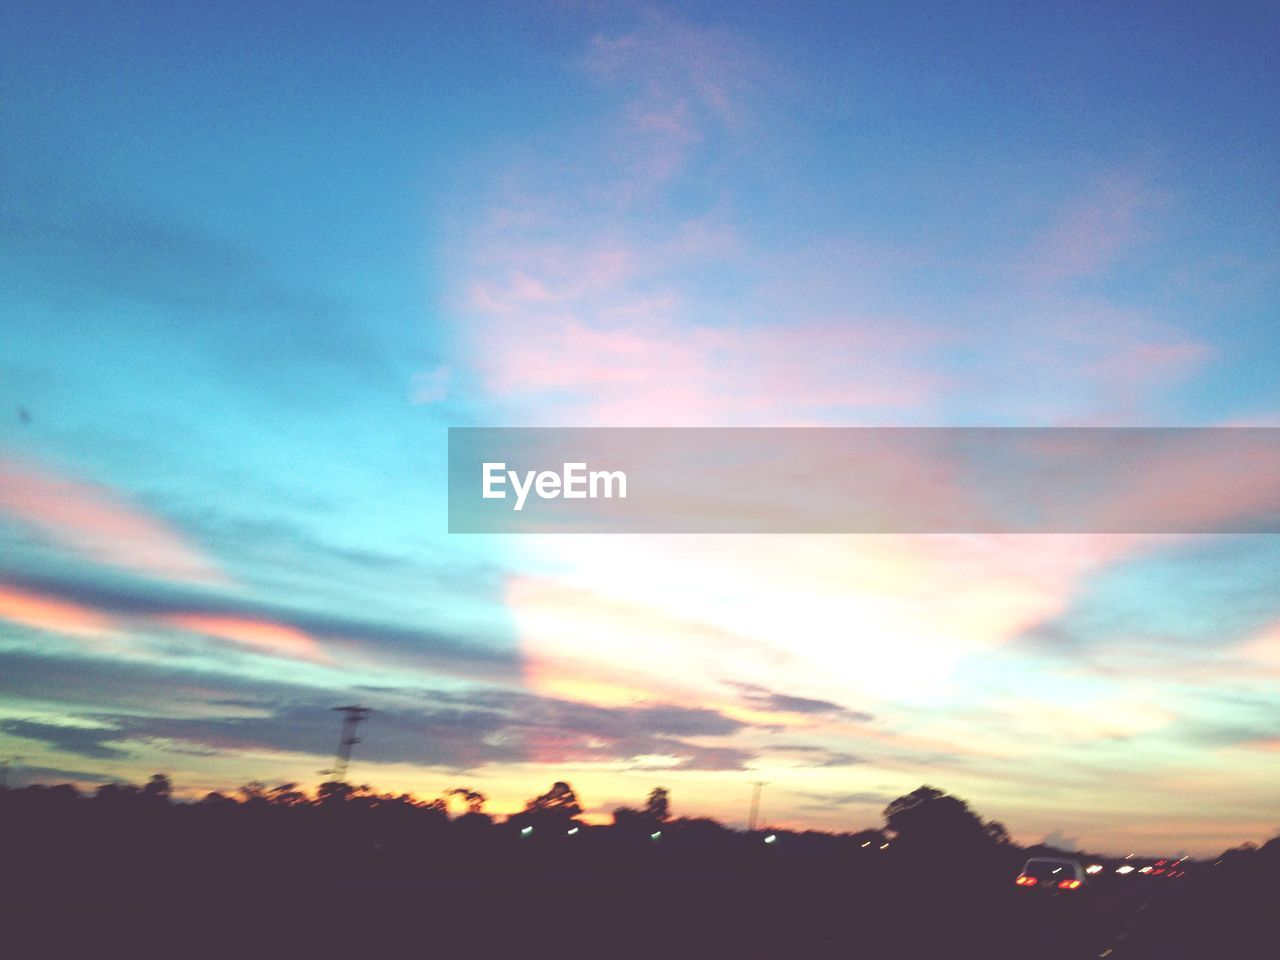 sky, sunset, silhouette, cloud - sky, scenics, beauty in nature, no people, nature, tranquility, outdoors, low angle view, tree, city, day